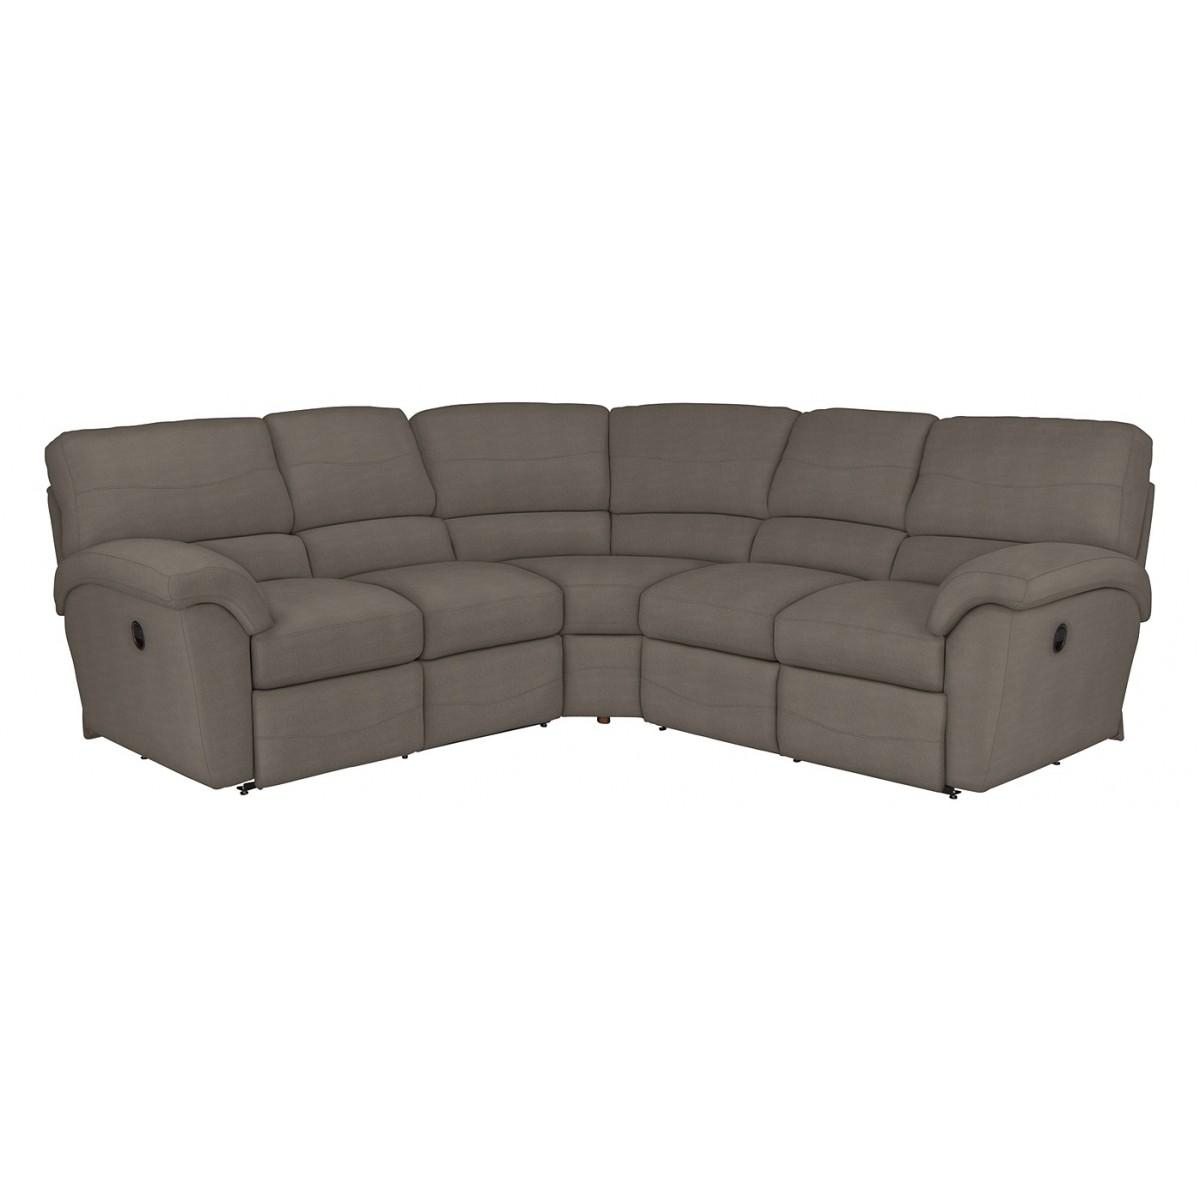 Lazyboy Sectional With Lazyboy Sectional Sofas (View 10 of 20)